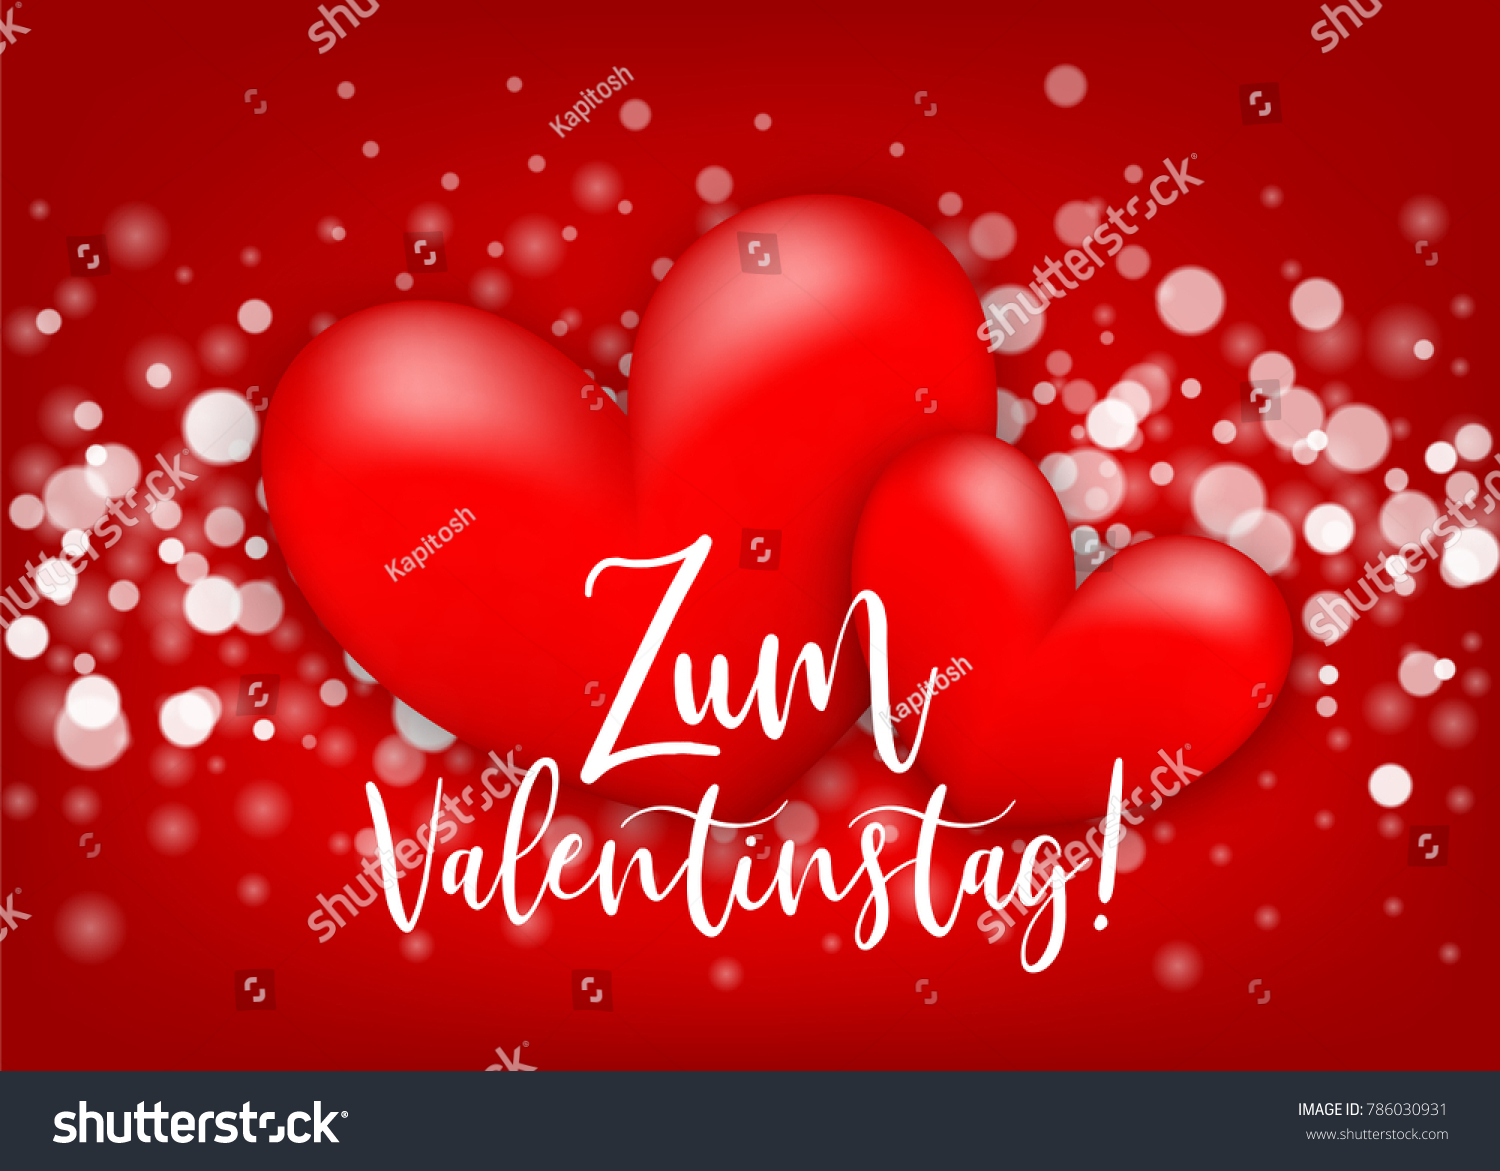 Happy Valentines Day   Zum Valentinstag German Language. Two Realistic 3d  Heart Romantic Sparkle Bokeh